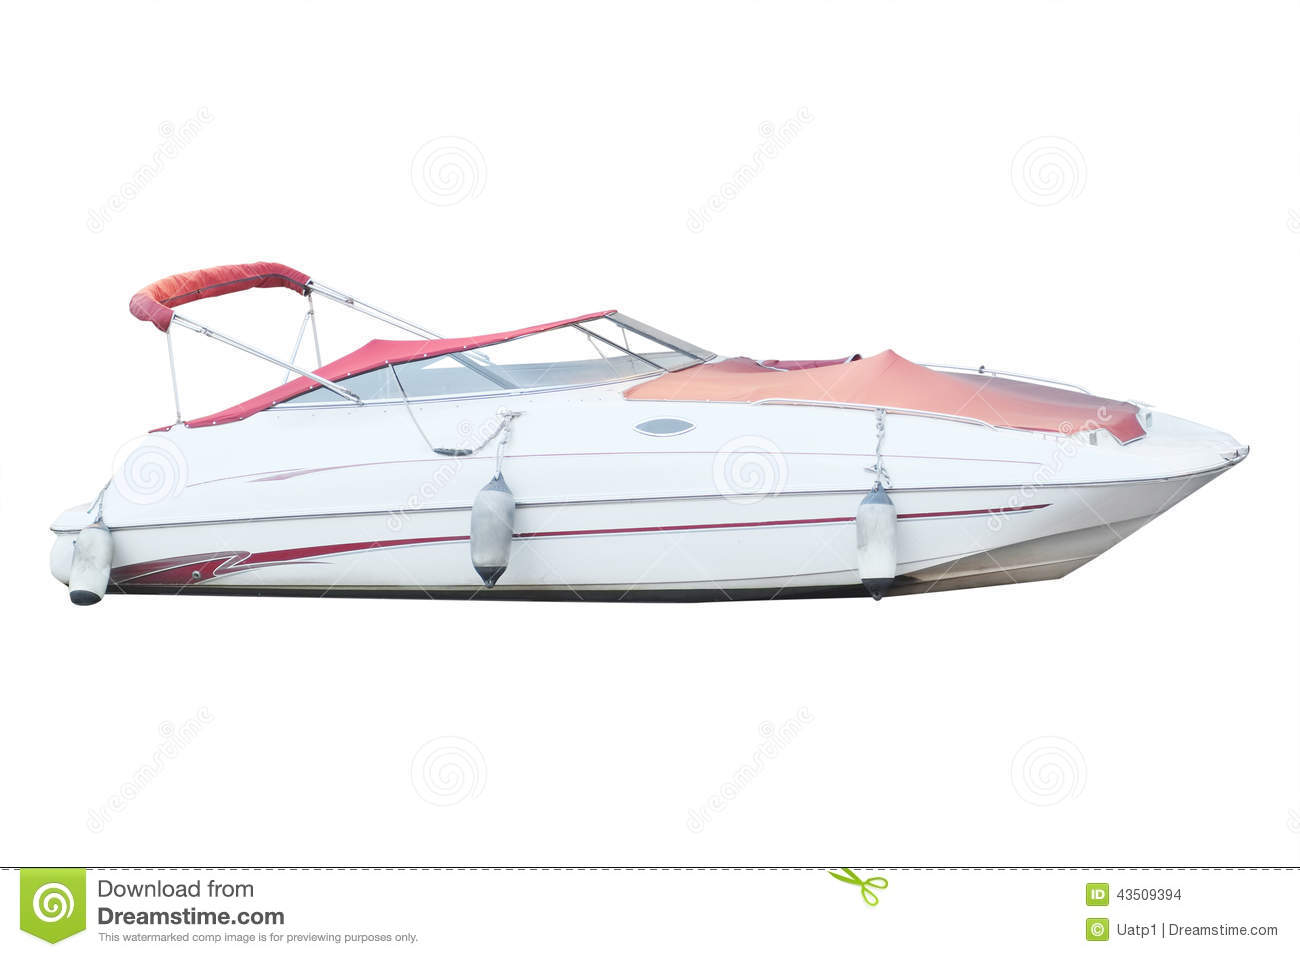 The Image Of A Motor Boat Stock Photo - Image: 43509394